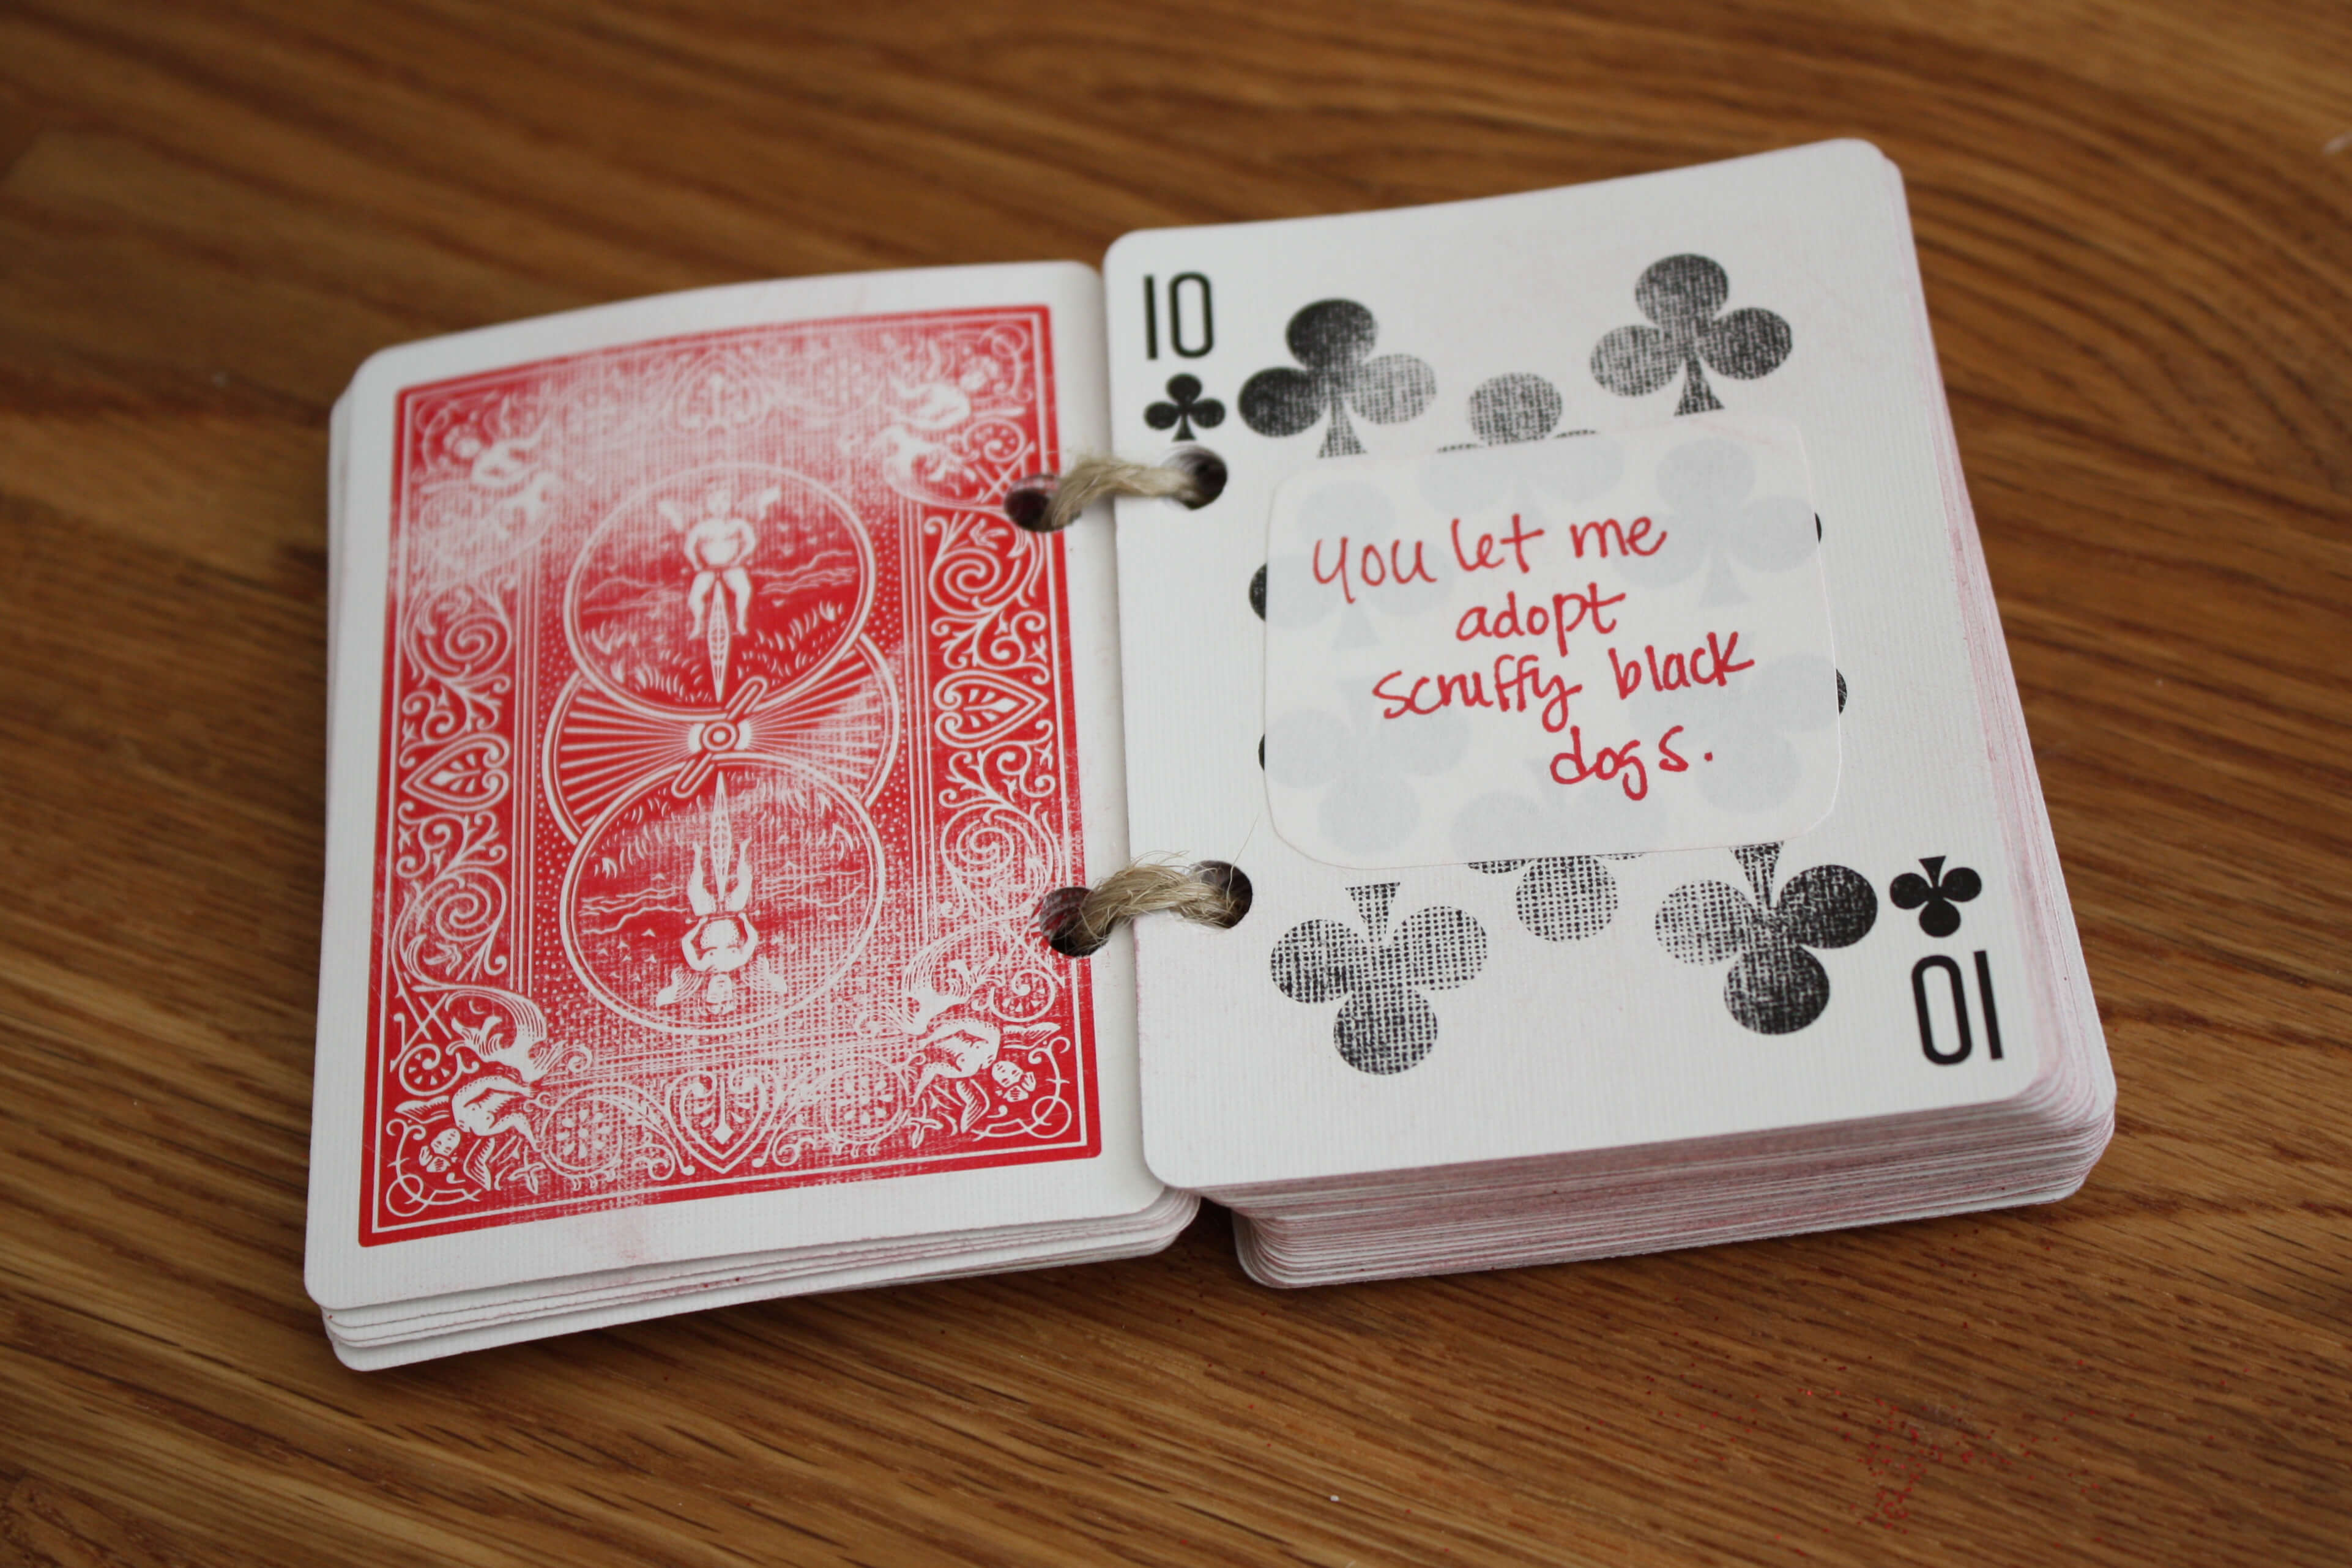 52 Reasons Why I Love You Ideas | Examples And Forms In 52 Reasons Why I Love You Cards Templates